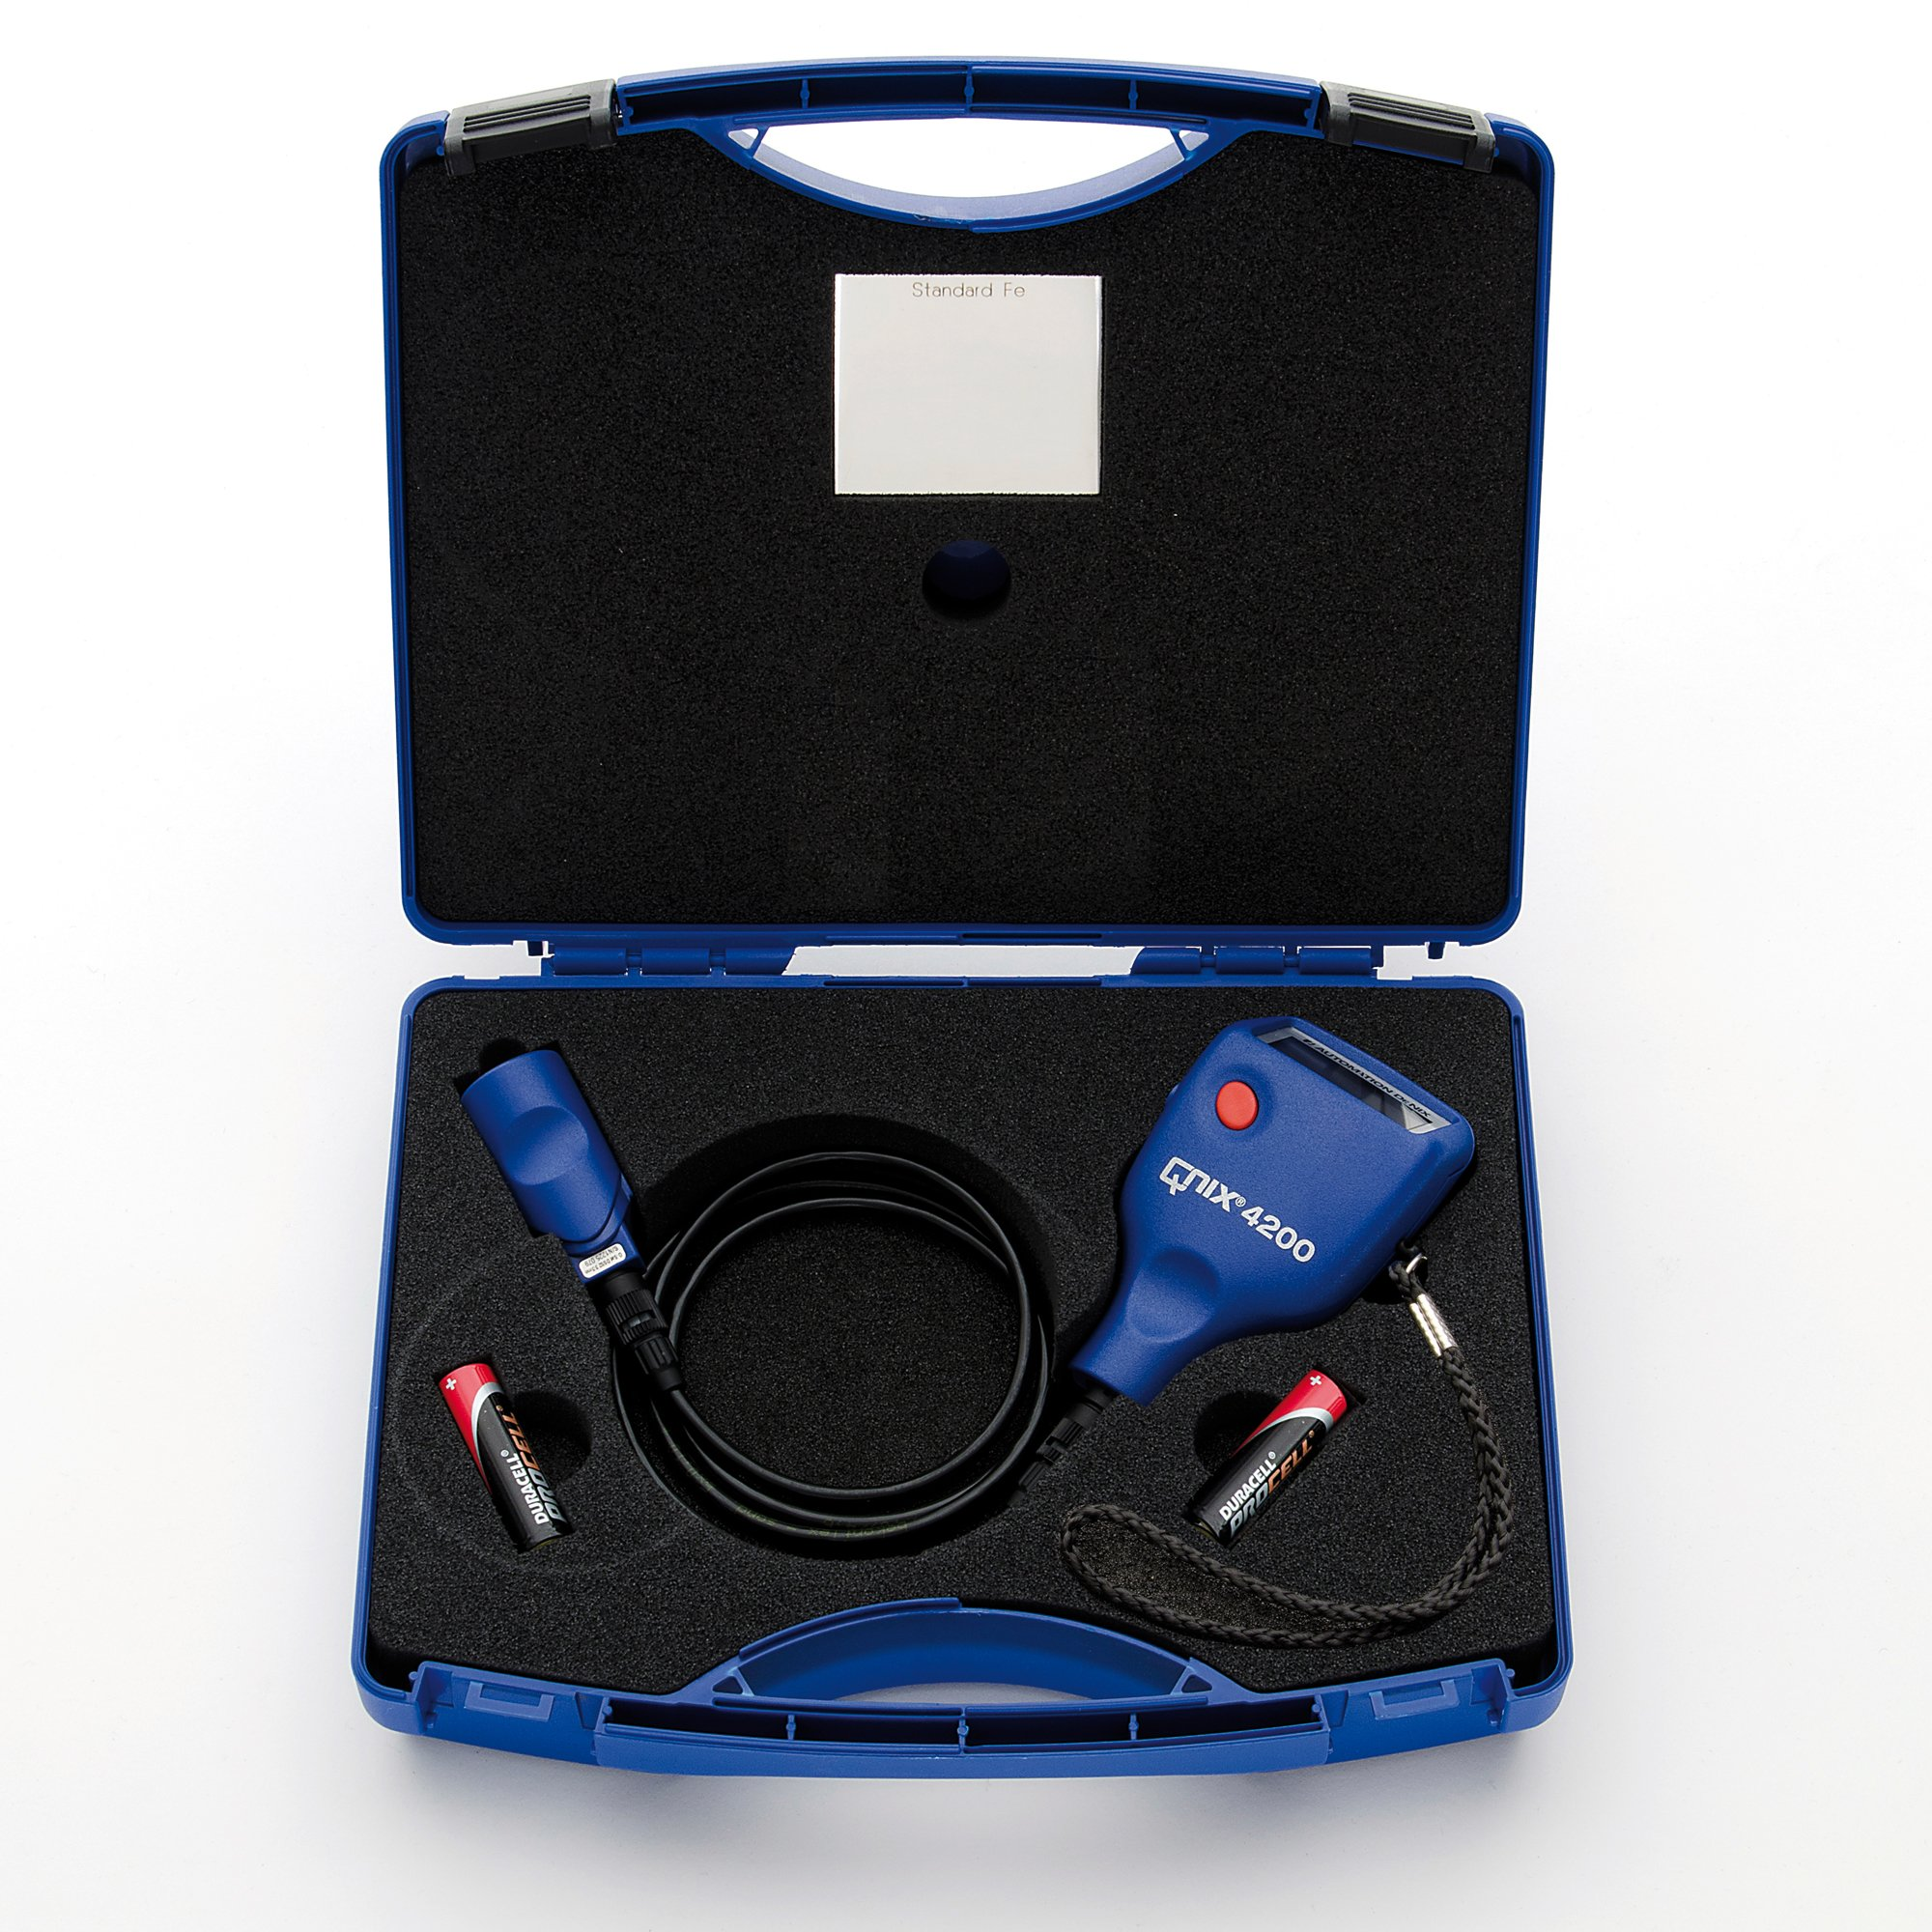 QNix 4200 Coating Thickness Gauge - Paint Meter w/ Integrated Fe 200 mil Cable Probe by Automation Dr. Nix